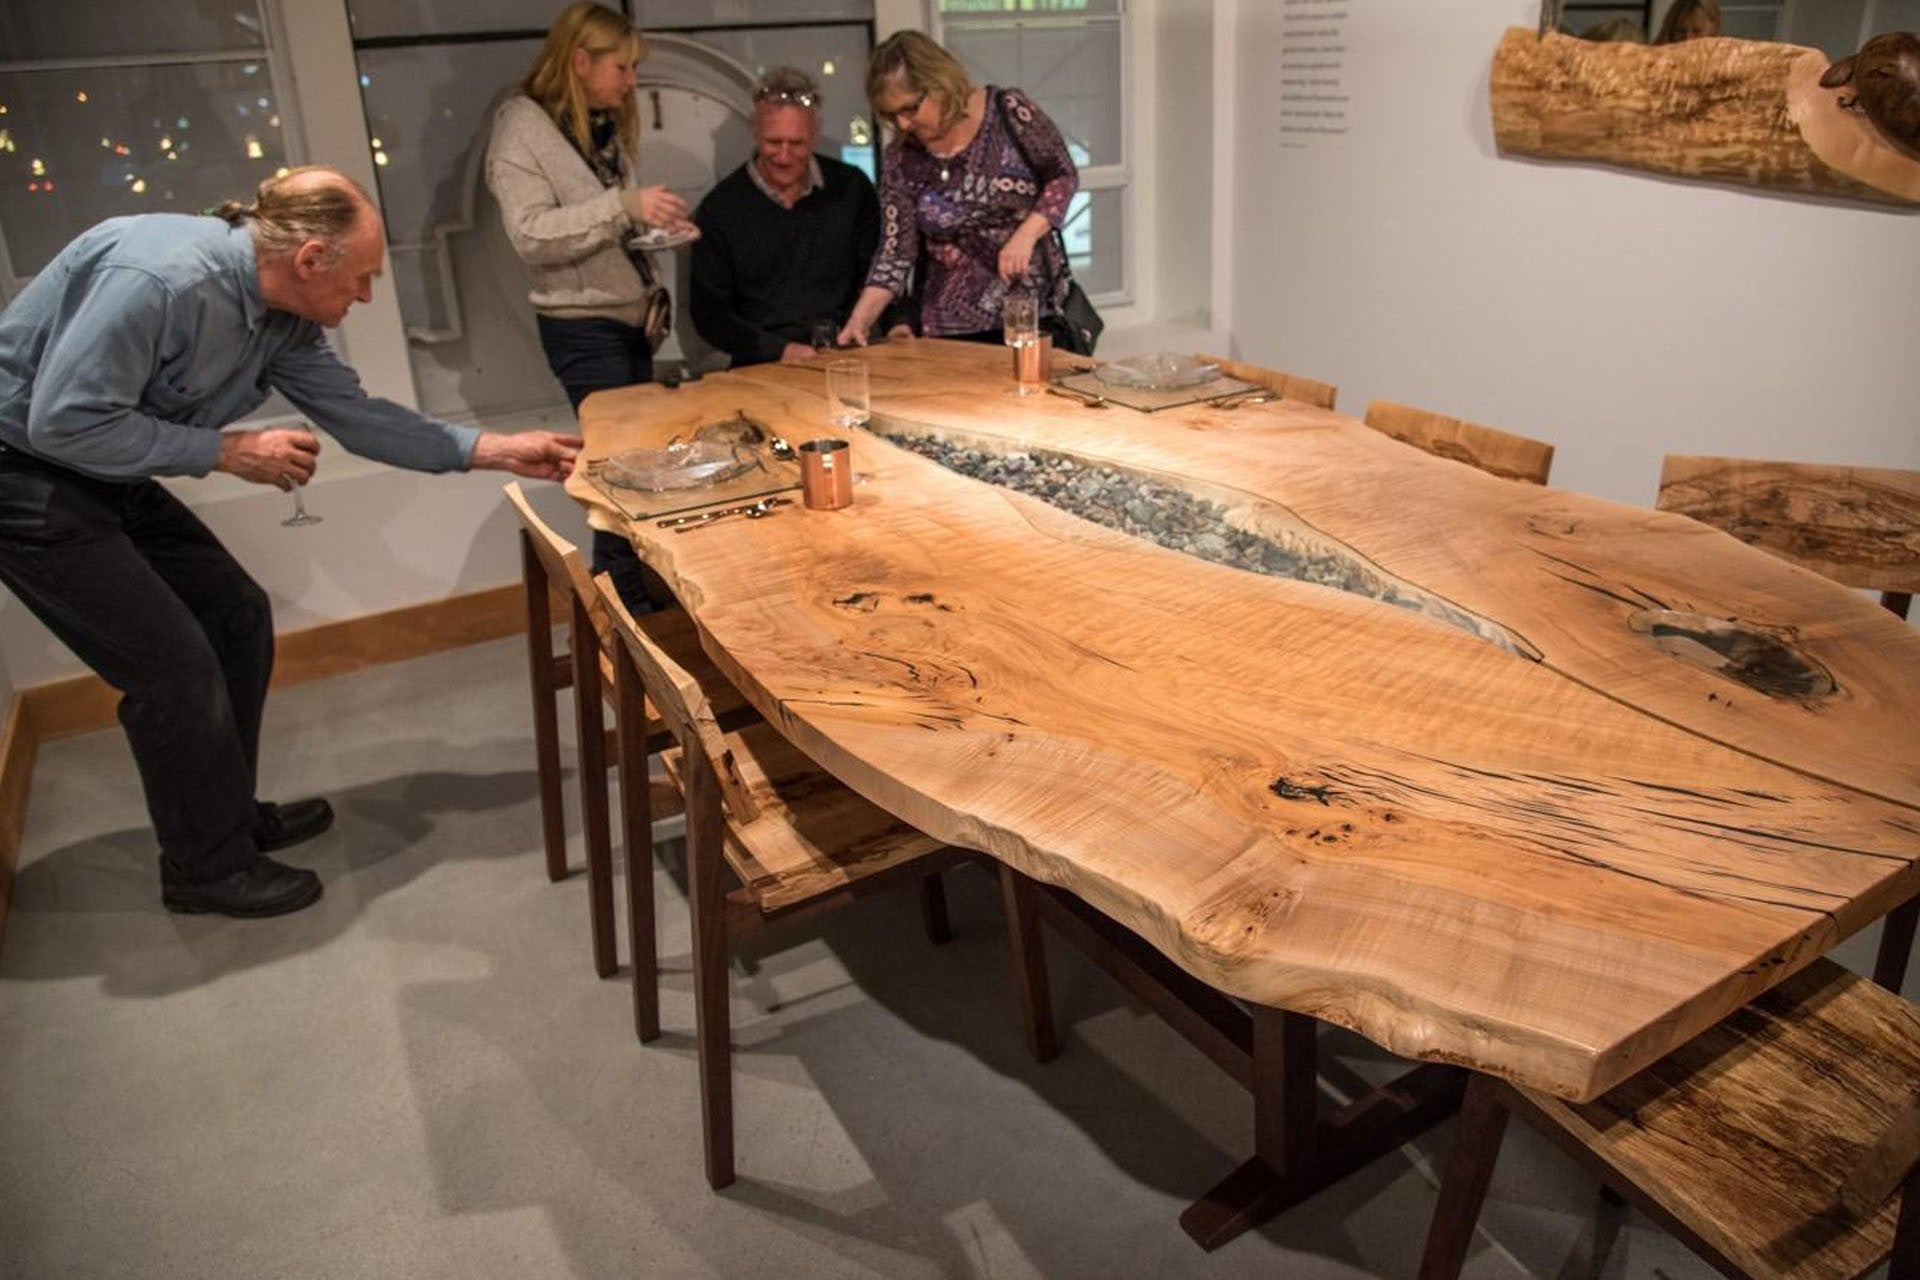 Onetree Dining Table By John Lore Live Edge Design Inc